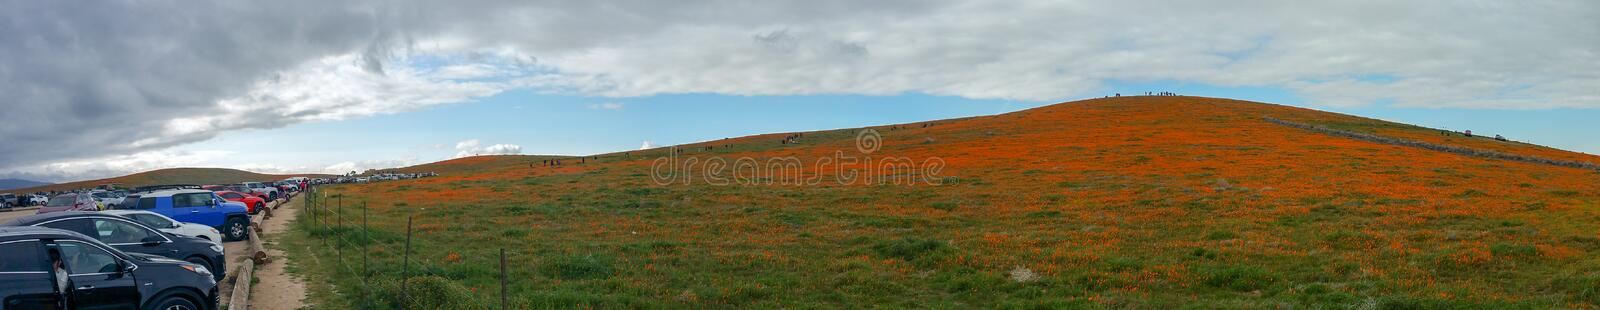 California Poppy field in the desert on cloudy day with sunbeams coming through clouds Eschscholzia californica and a sloping up stock photo